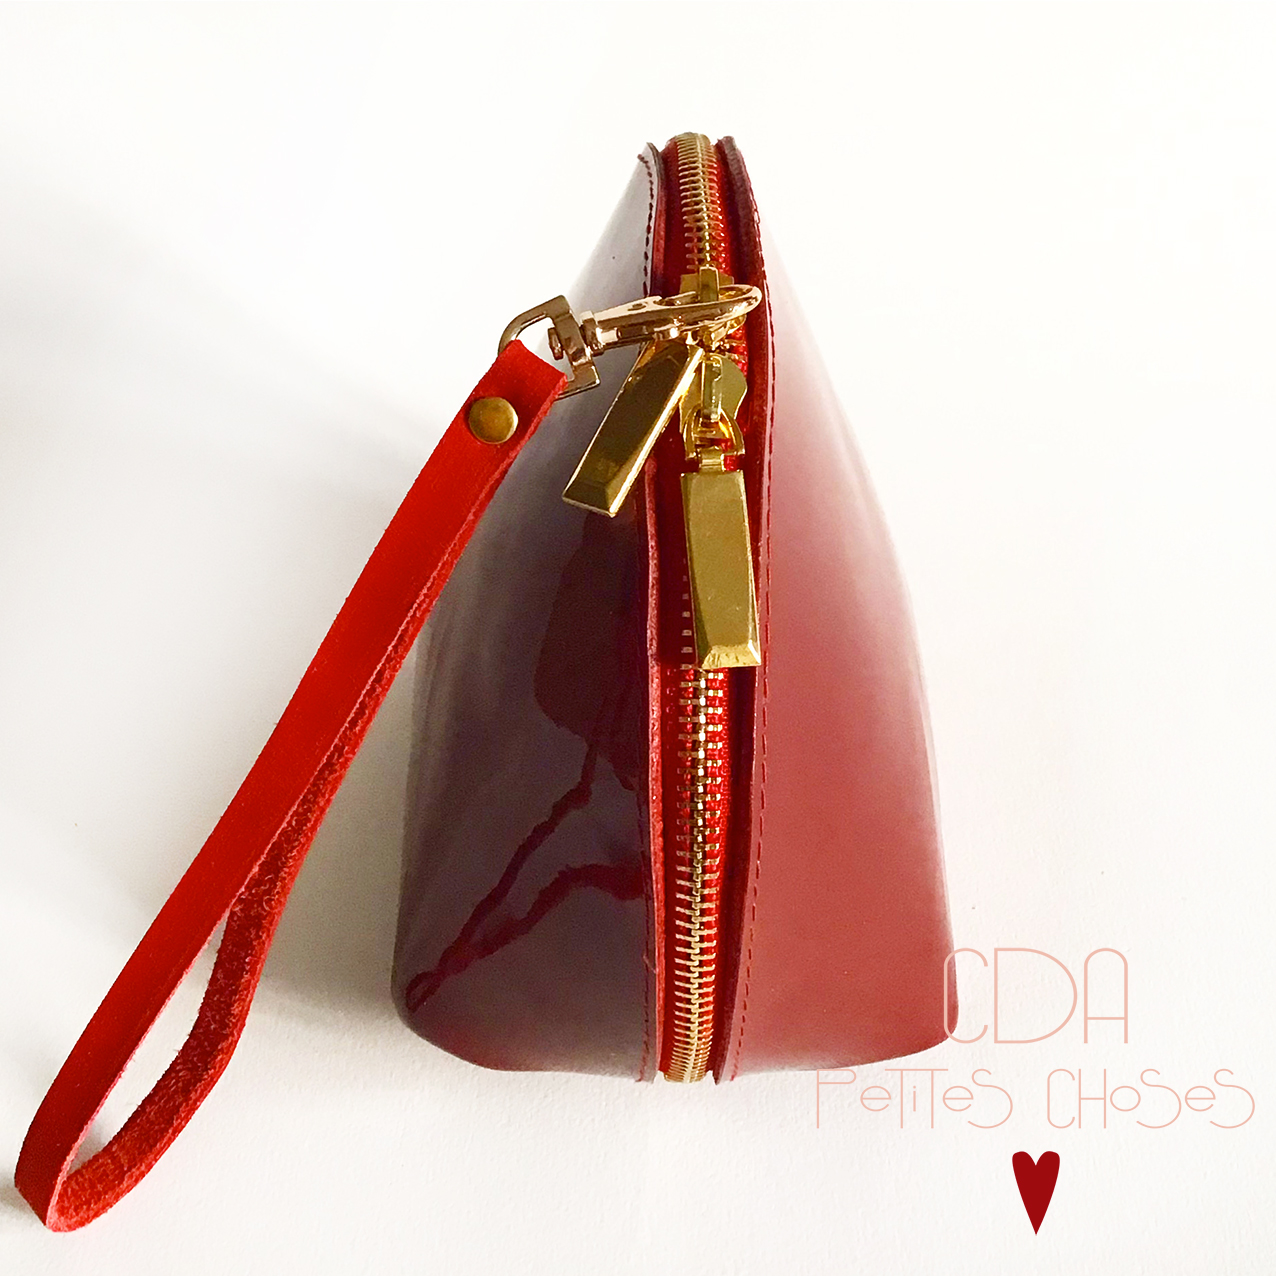 trousse-coquille-cuir-vernis-lisse-rouge-CDA Petites Choses